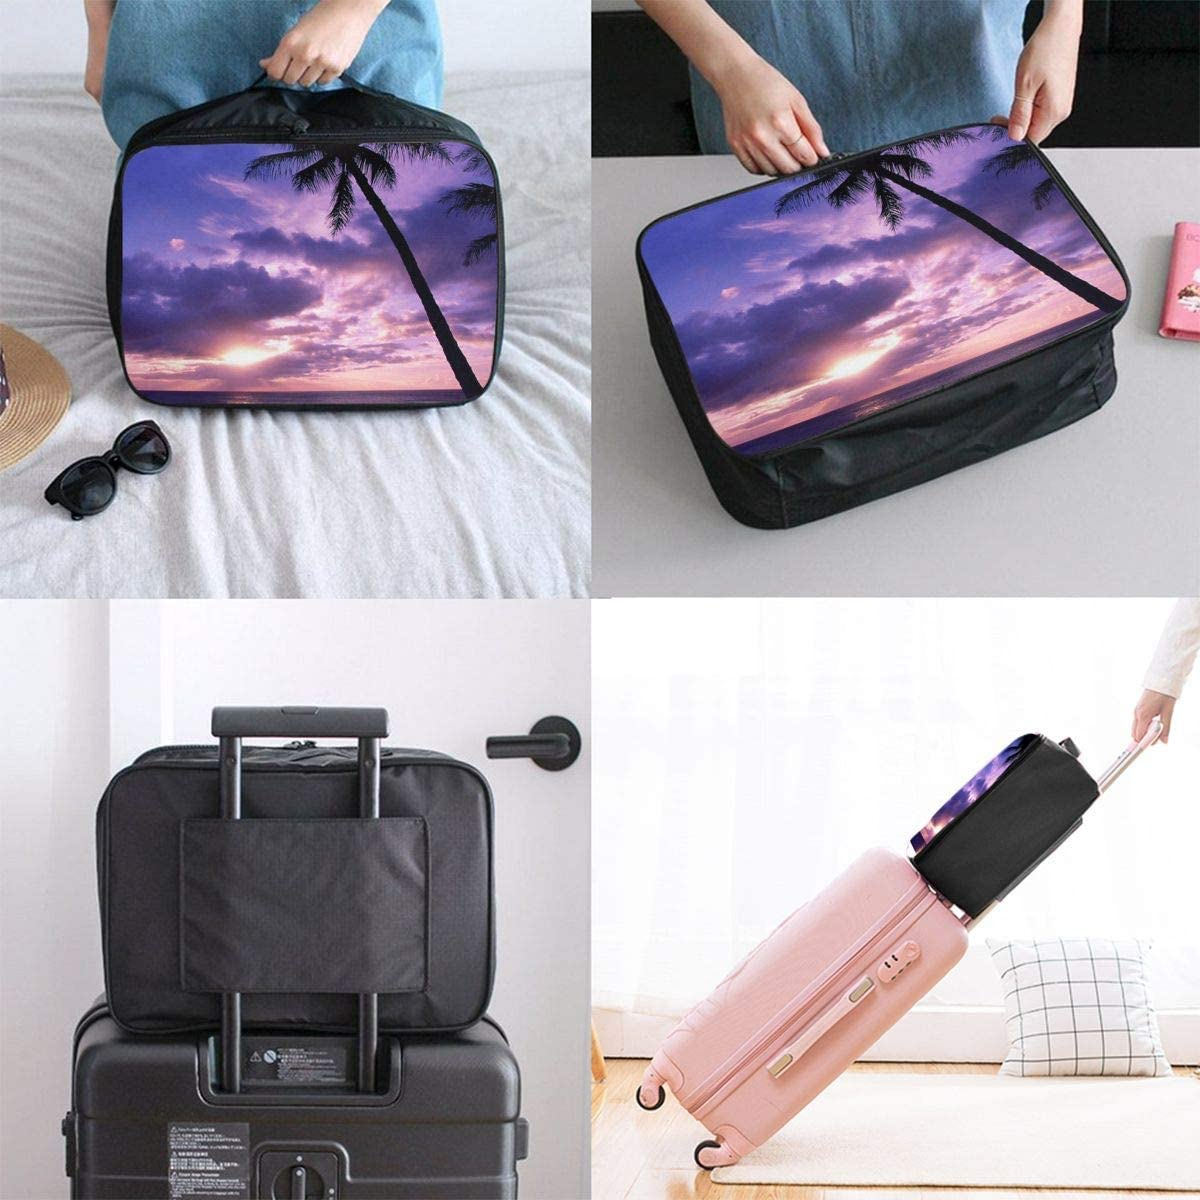 Travel Bags Palm Tree At Sunset Portable Foldable Trolley Handle Luggage Bag